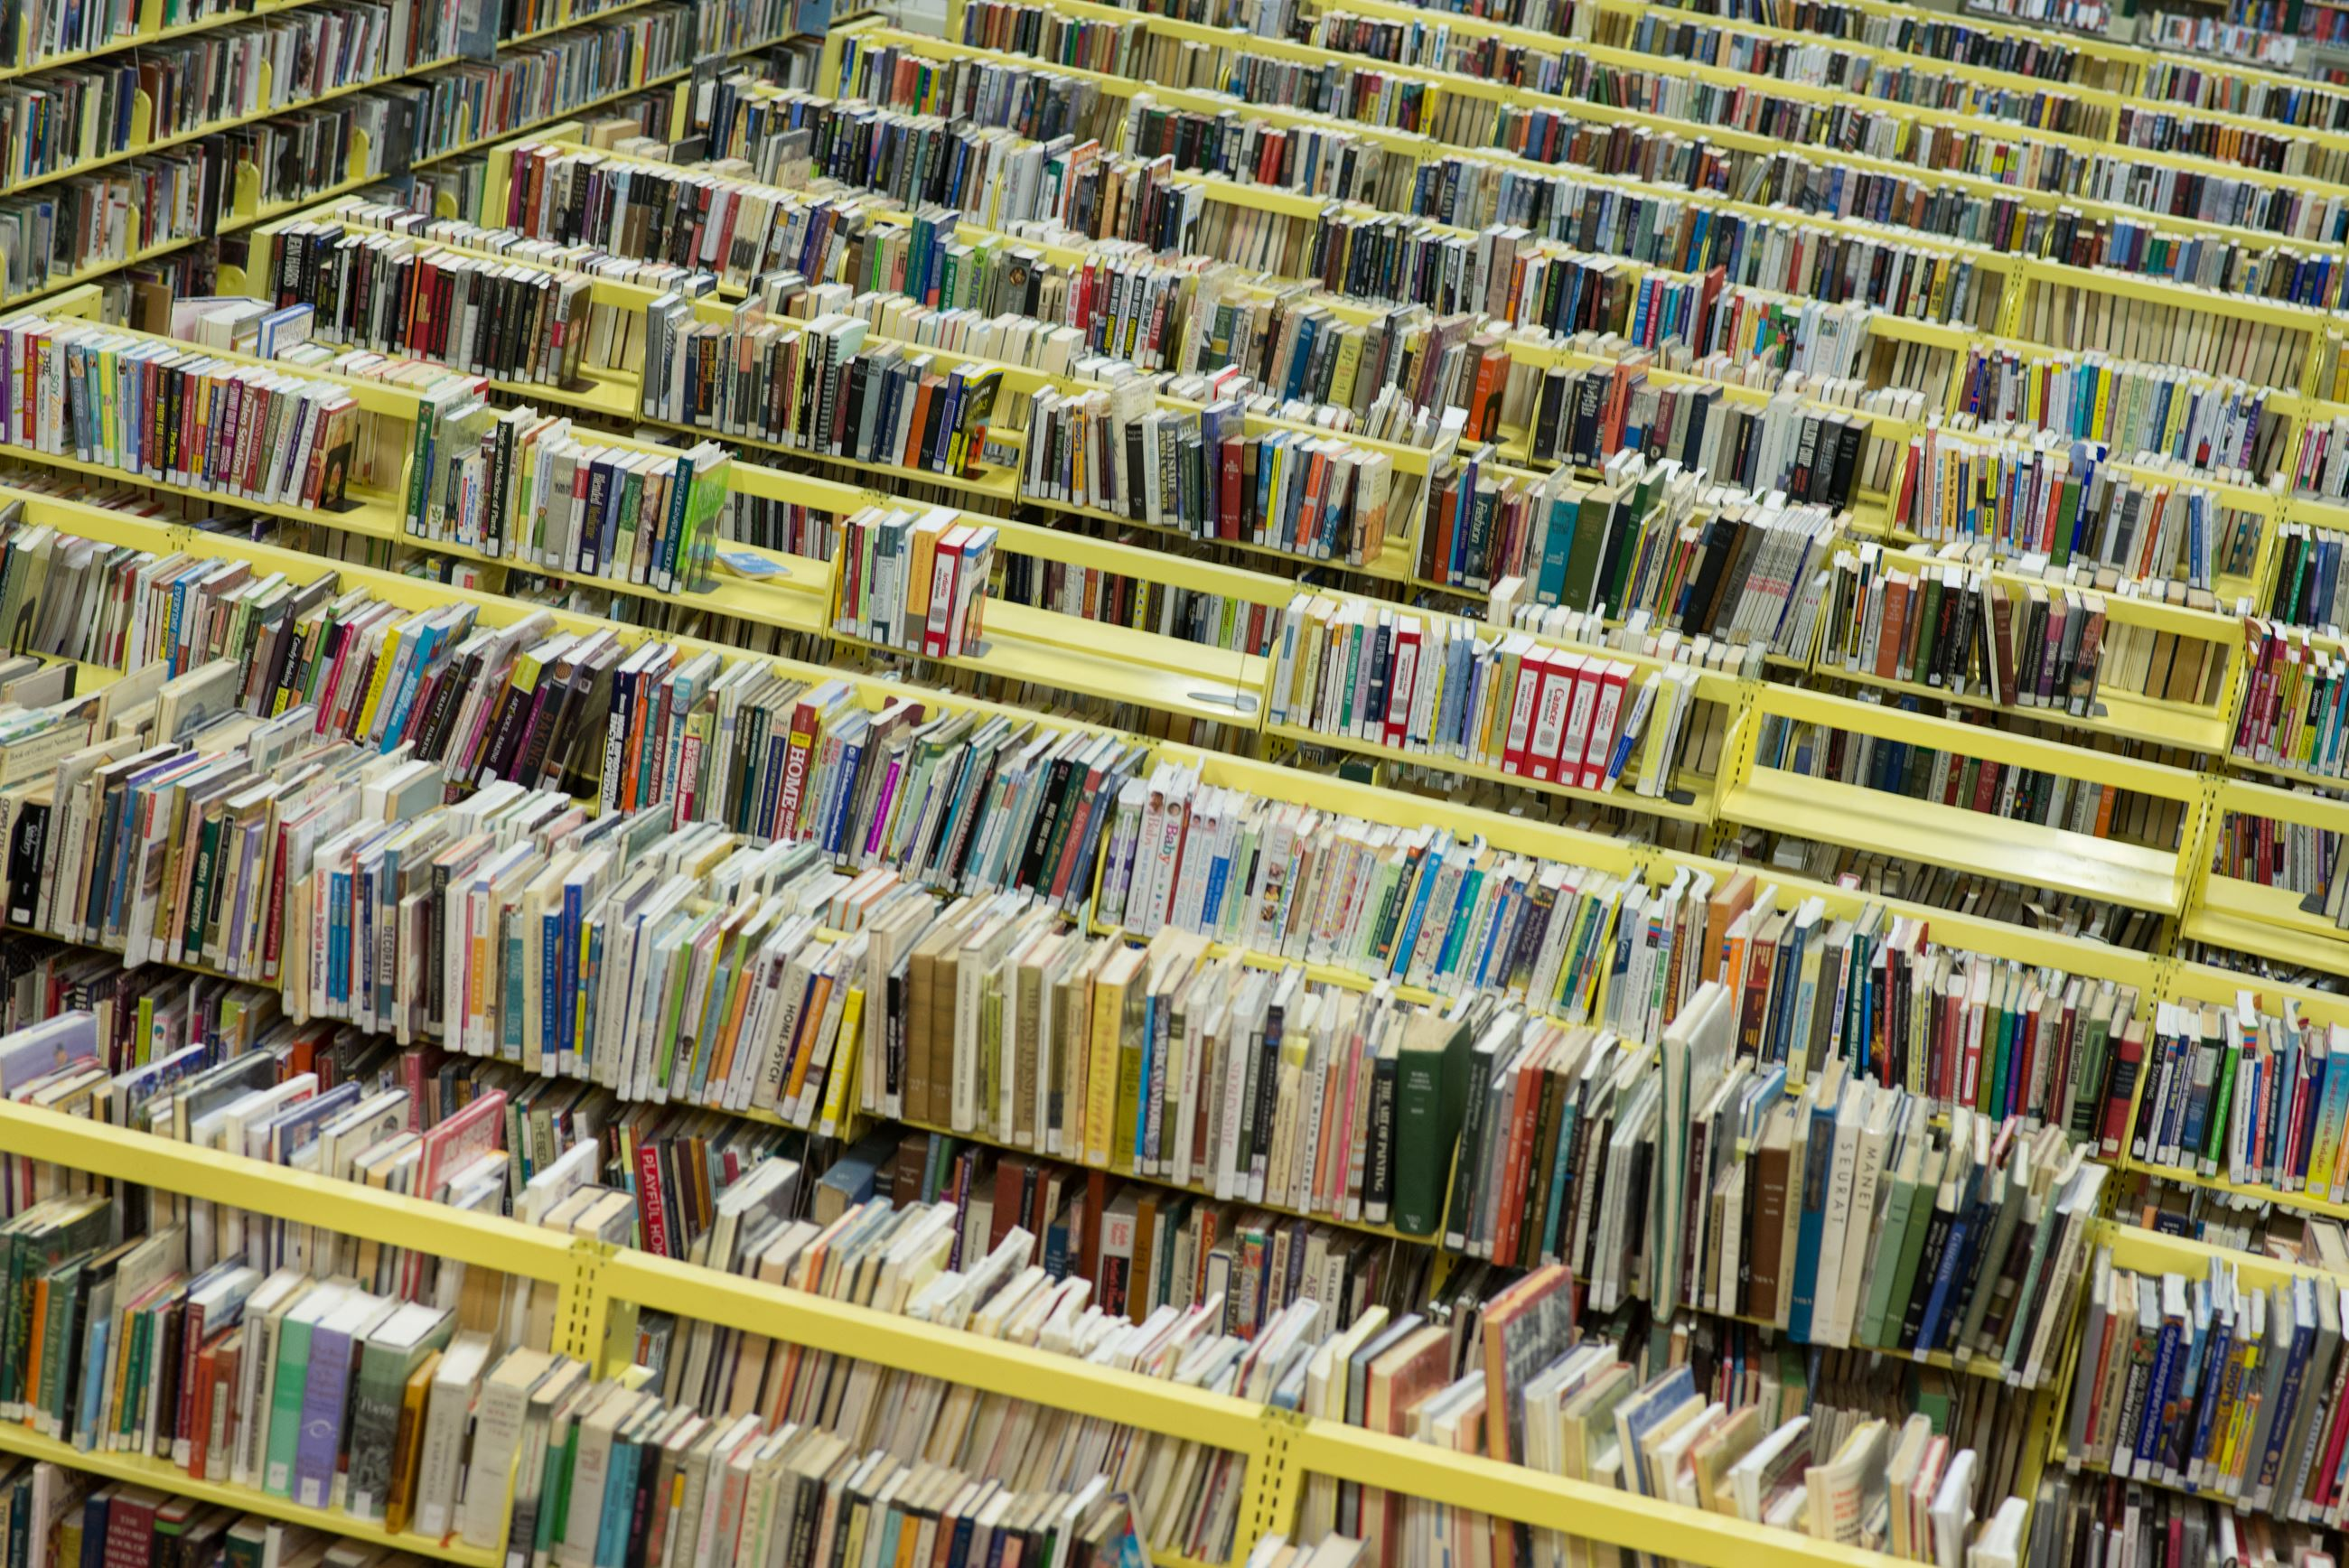 Image of rows of bookshelves from above